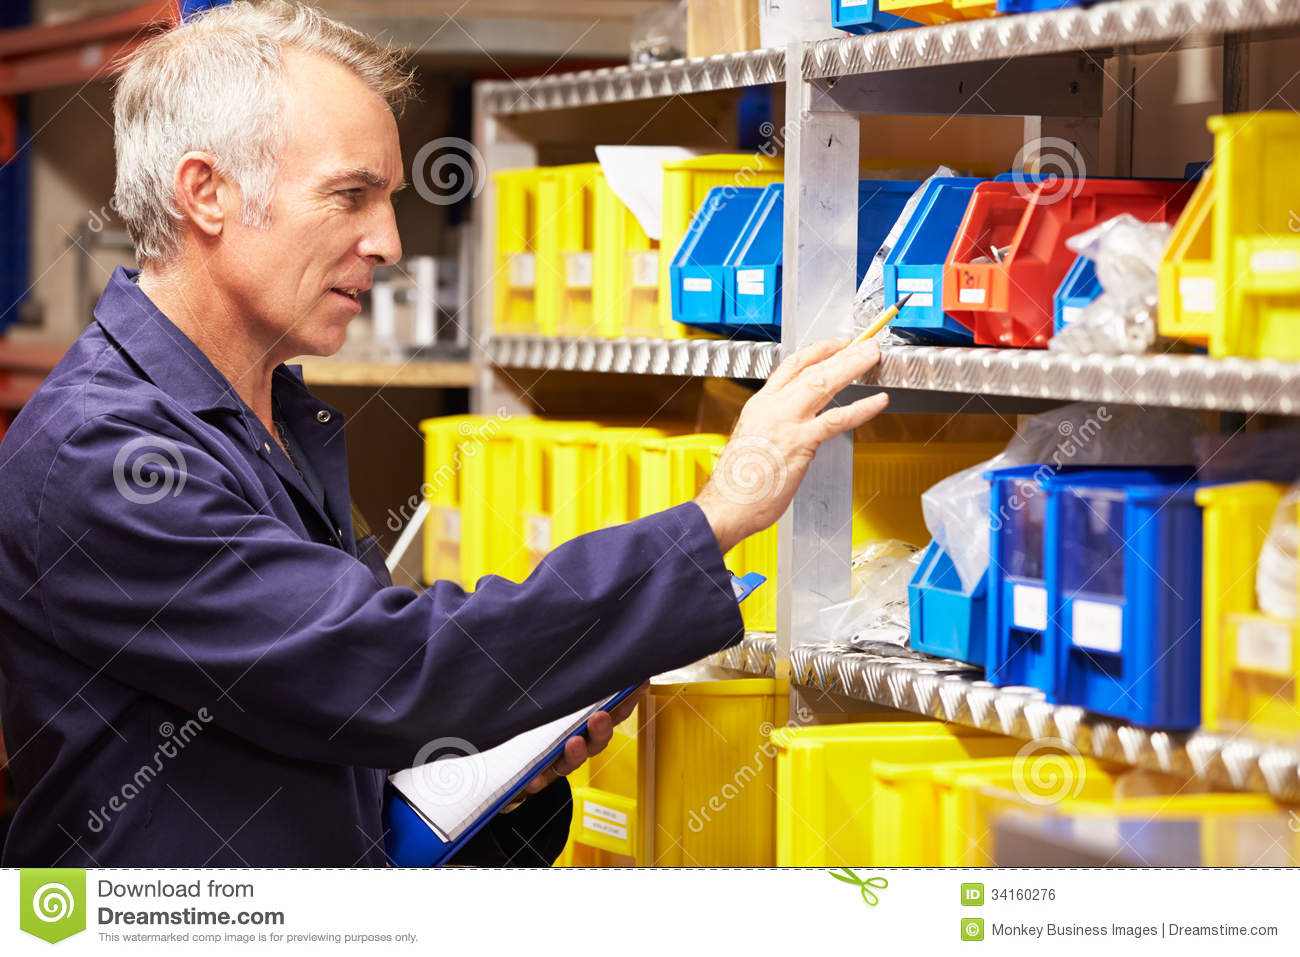 worker checking stock levels in store room stock image image worker checking stock levels in store room royalty stock image